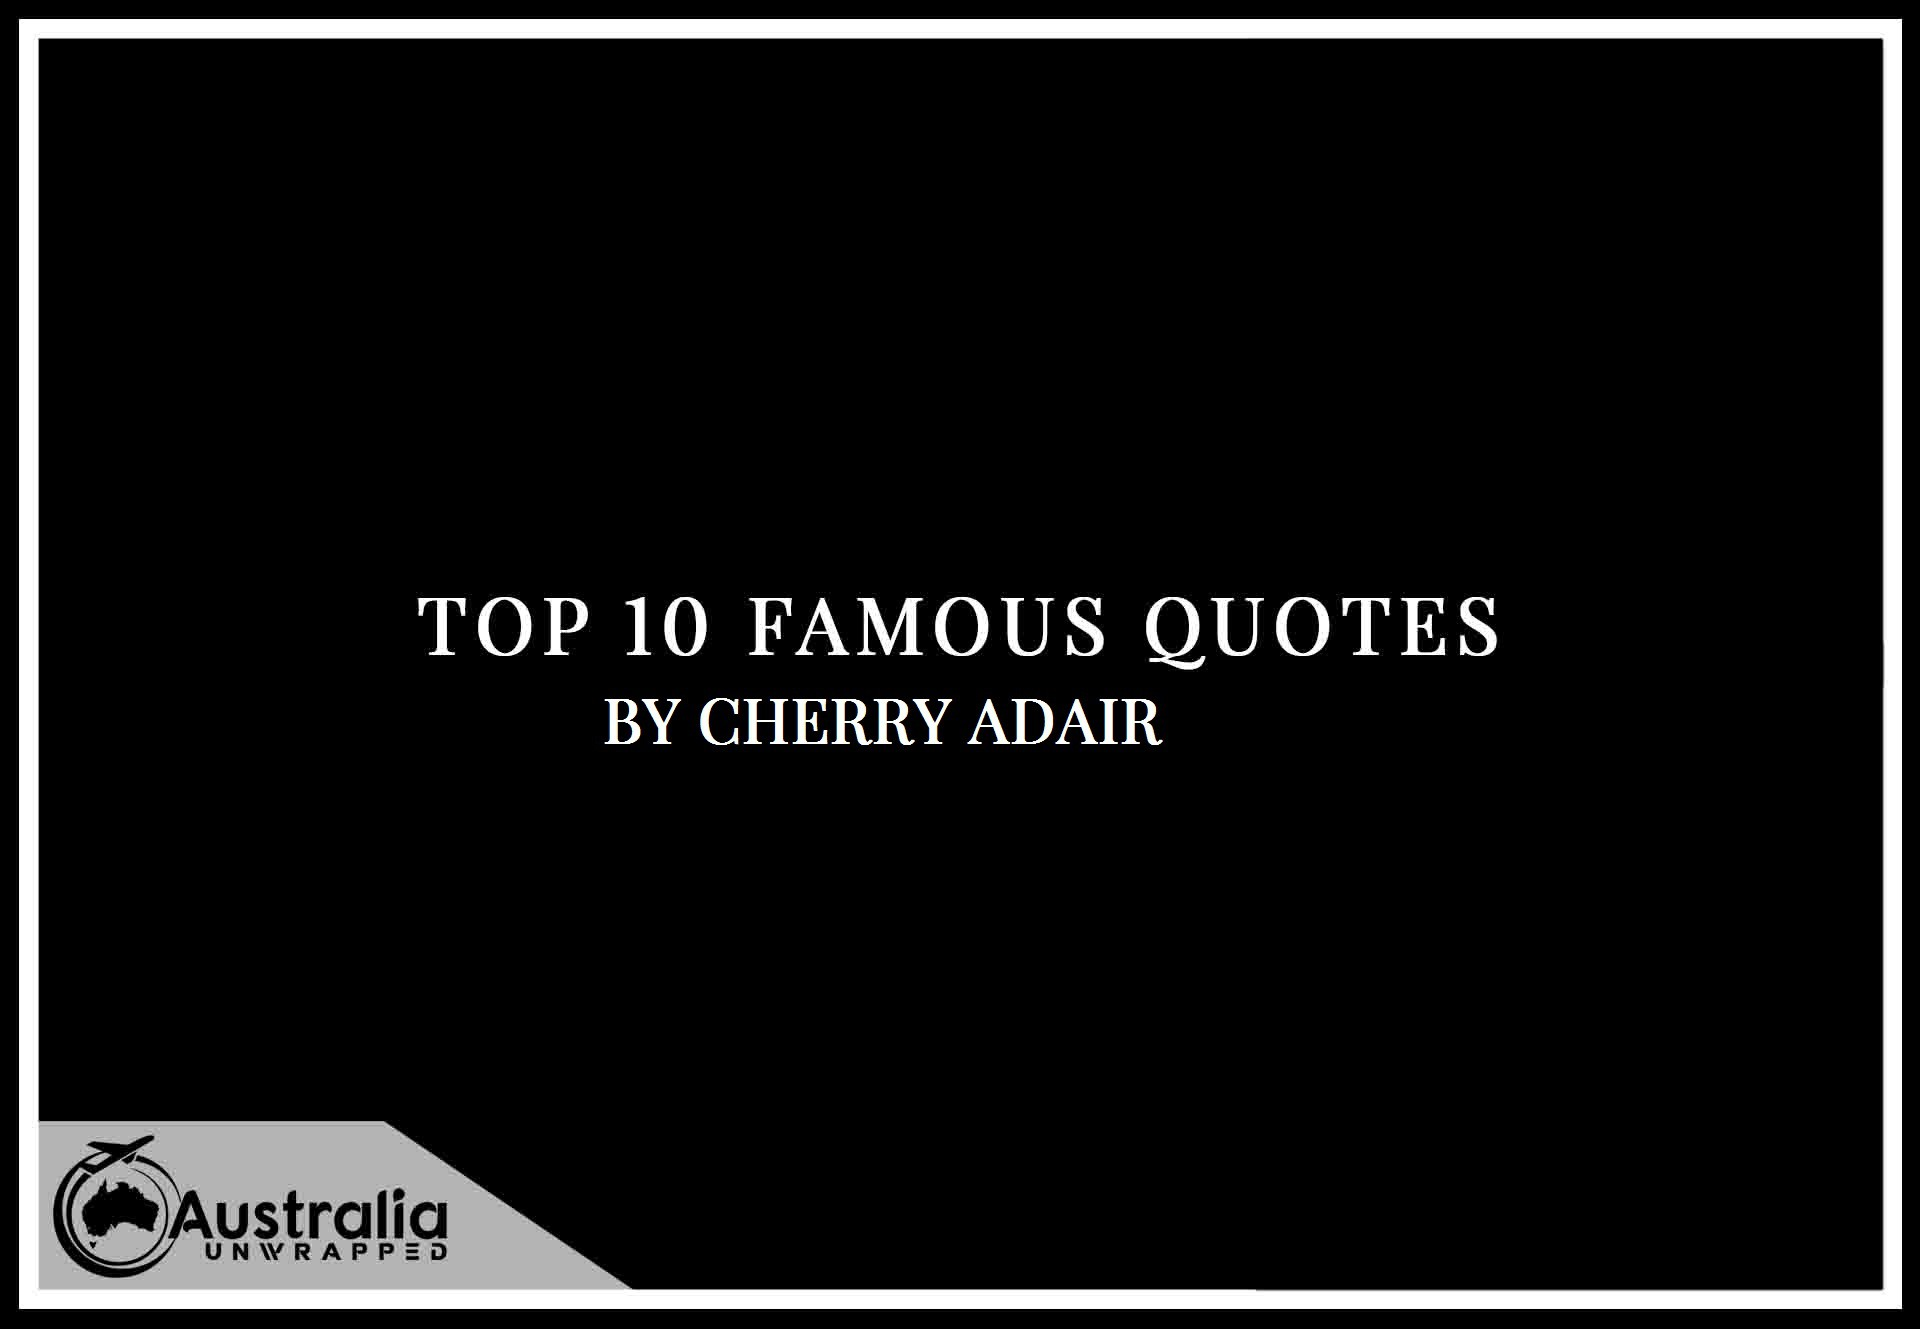 Cherry Adair's Top 10 Popular and Famous Quotes